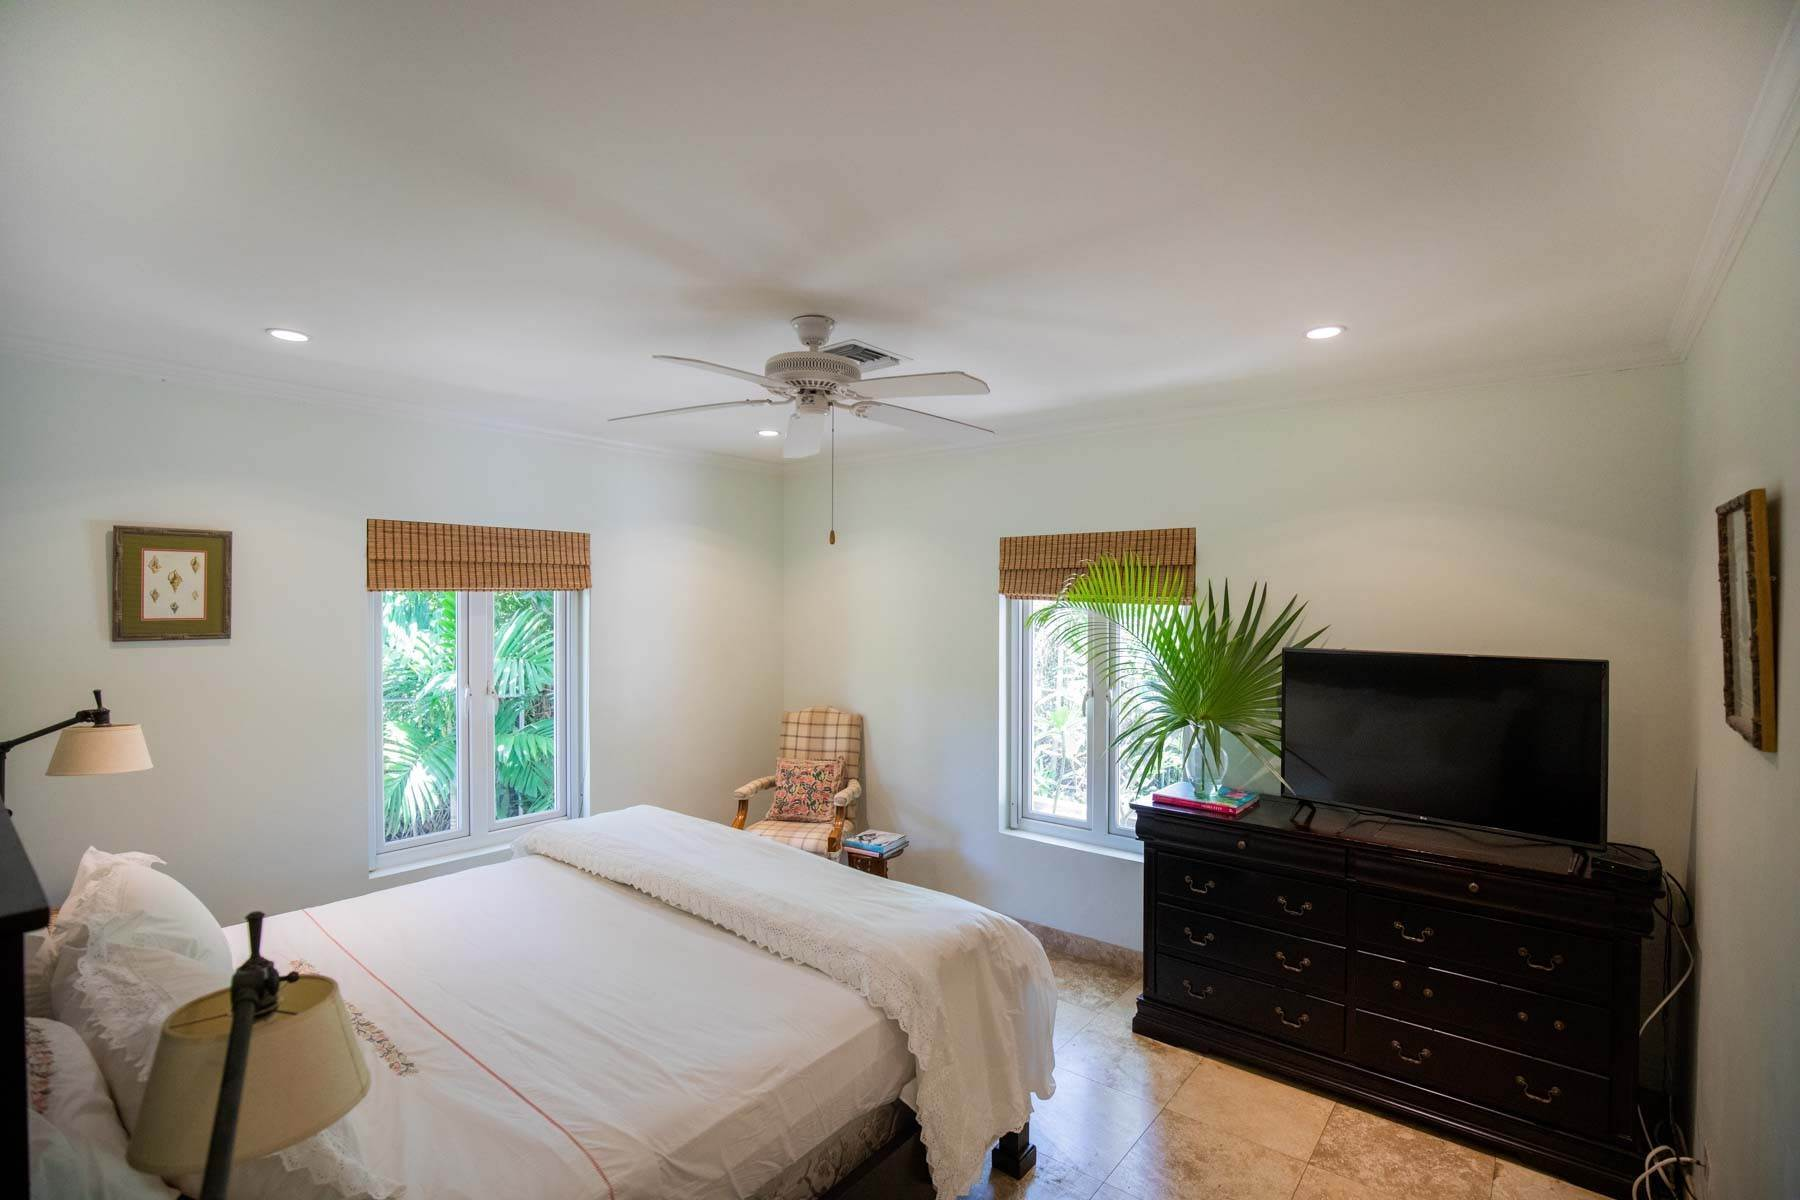 6. Single Family Homes for Sale at Charming Skyline Heights Home - MLS 43542 Nassau And Paradise Island, Bahamas